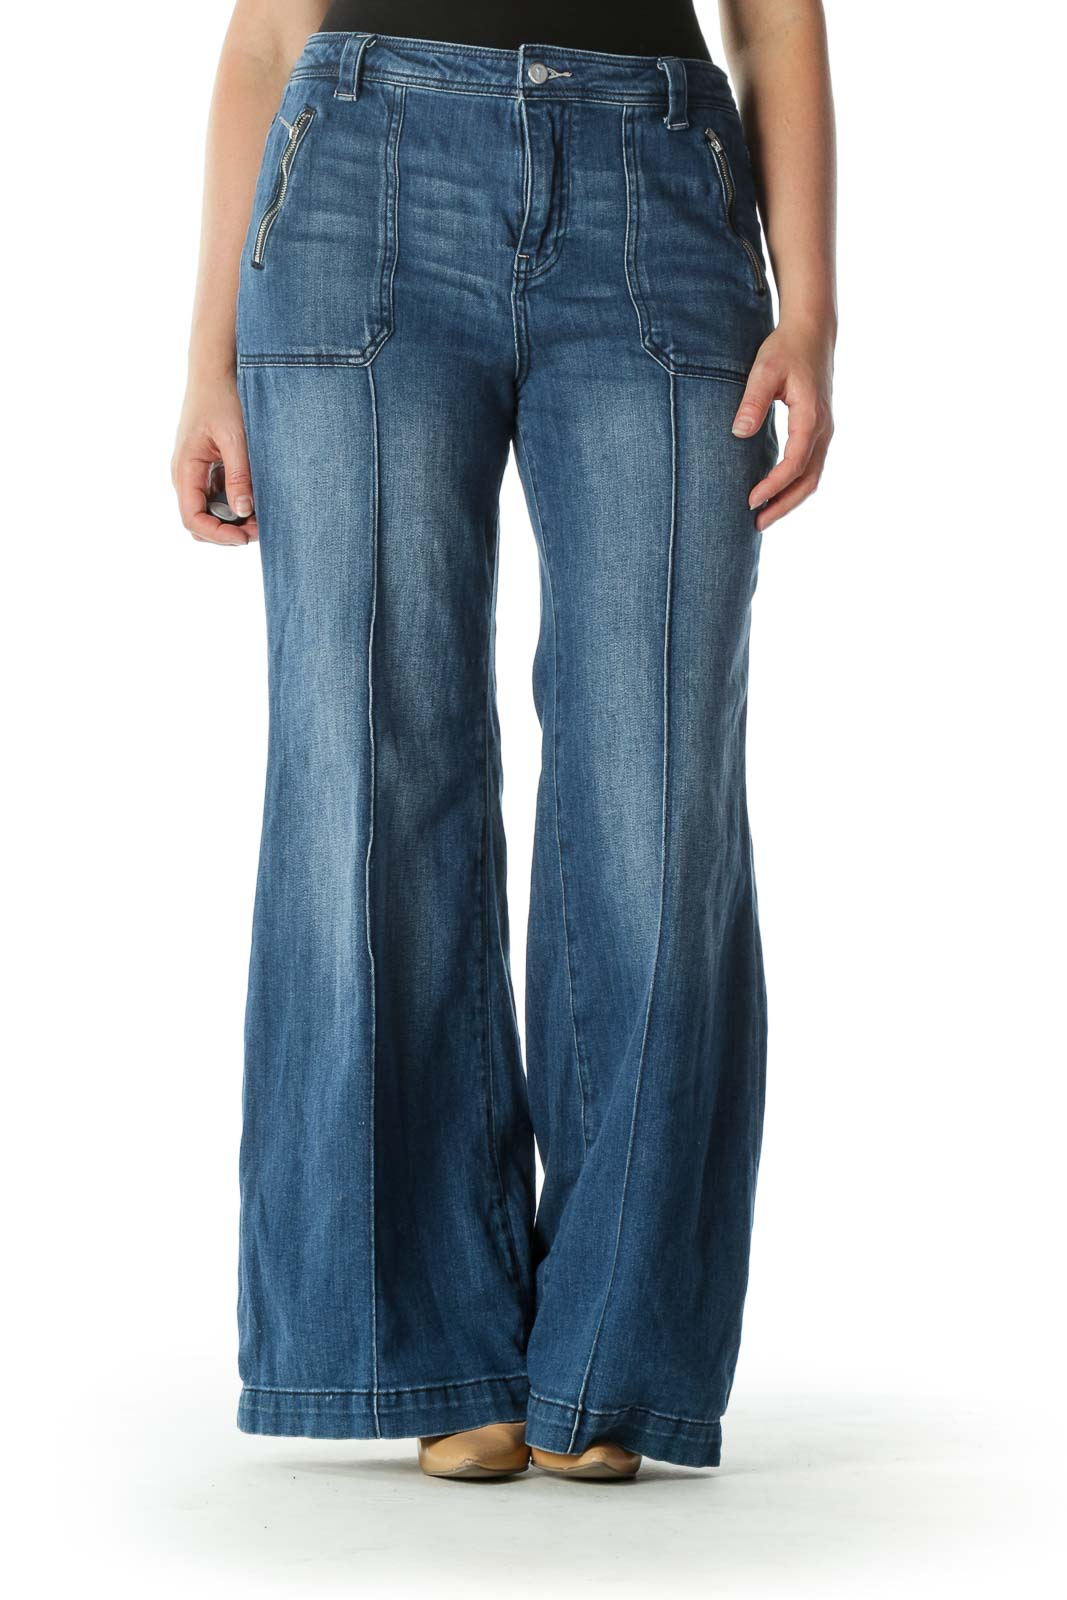 Blue Medium Wash Raised Seam Denim Jeans